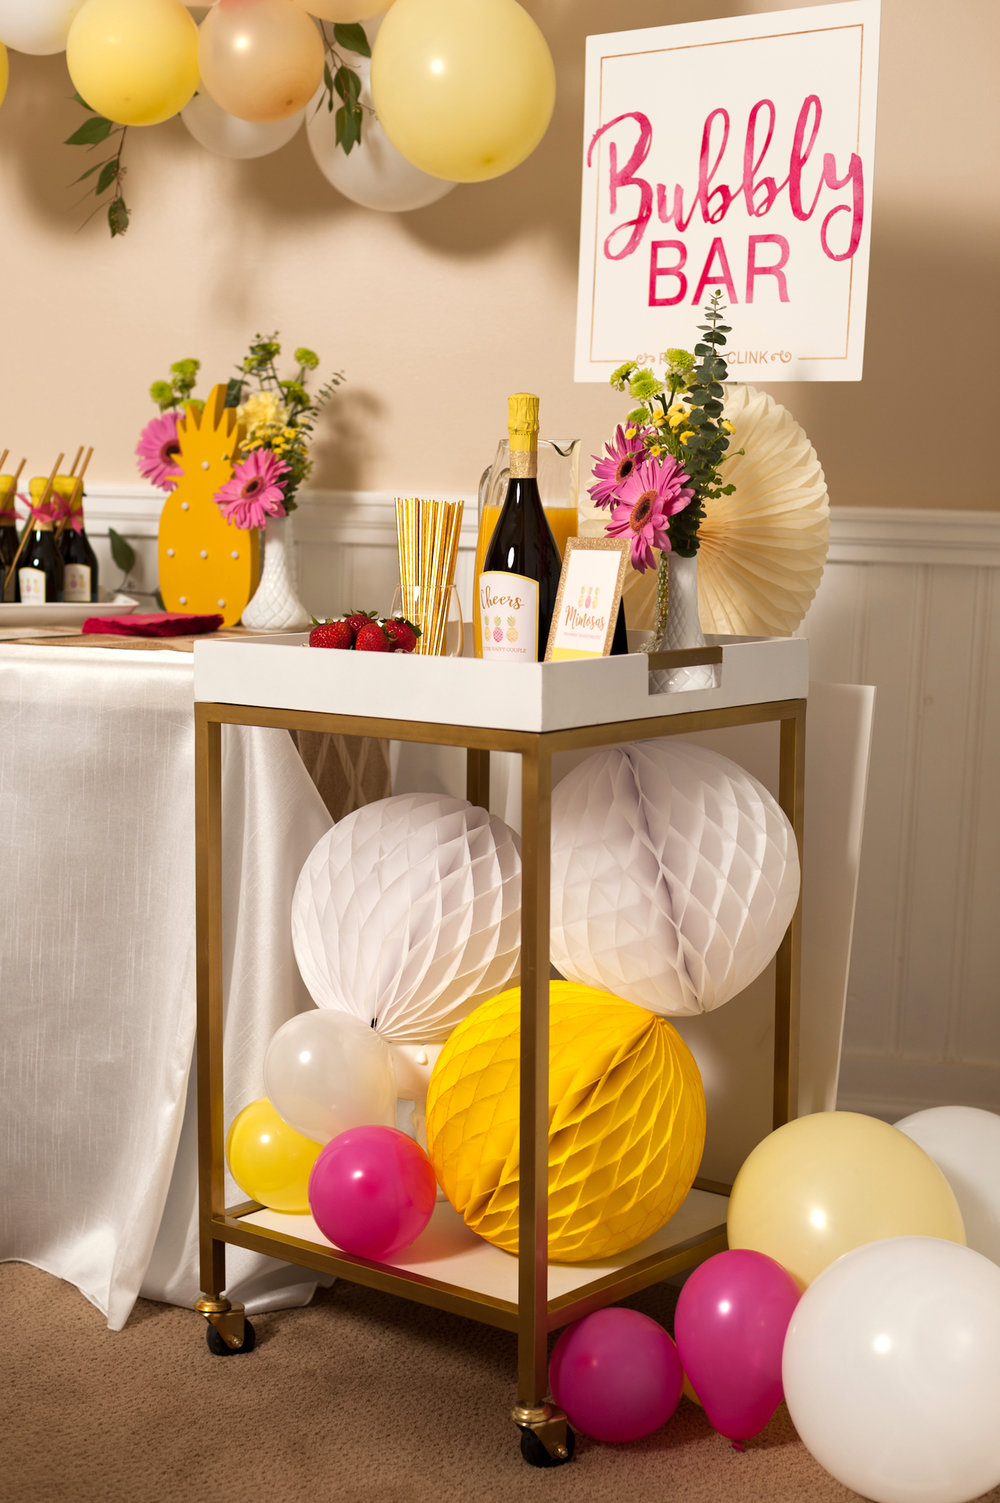 Pineapple Themed Bubbly Bar for a Tropical Bridal Shower - click for more inspiration / event design by Hey Girl Events